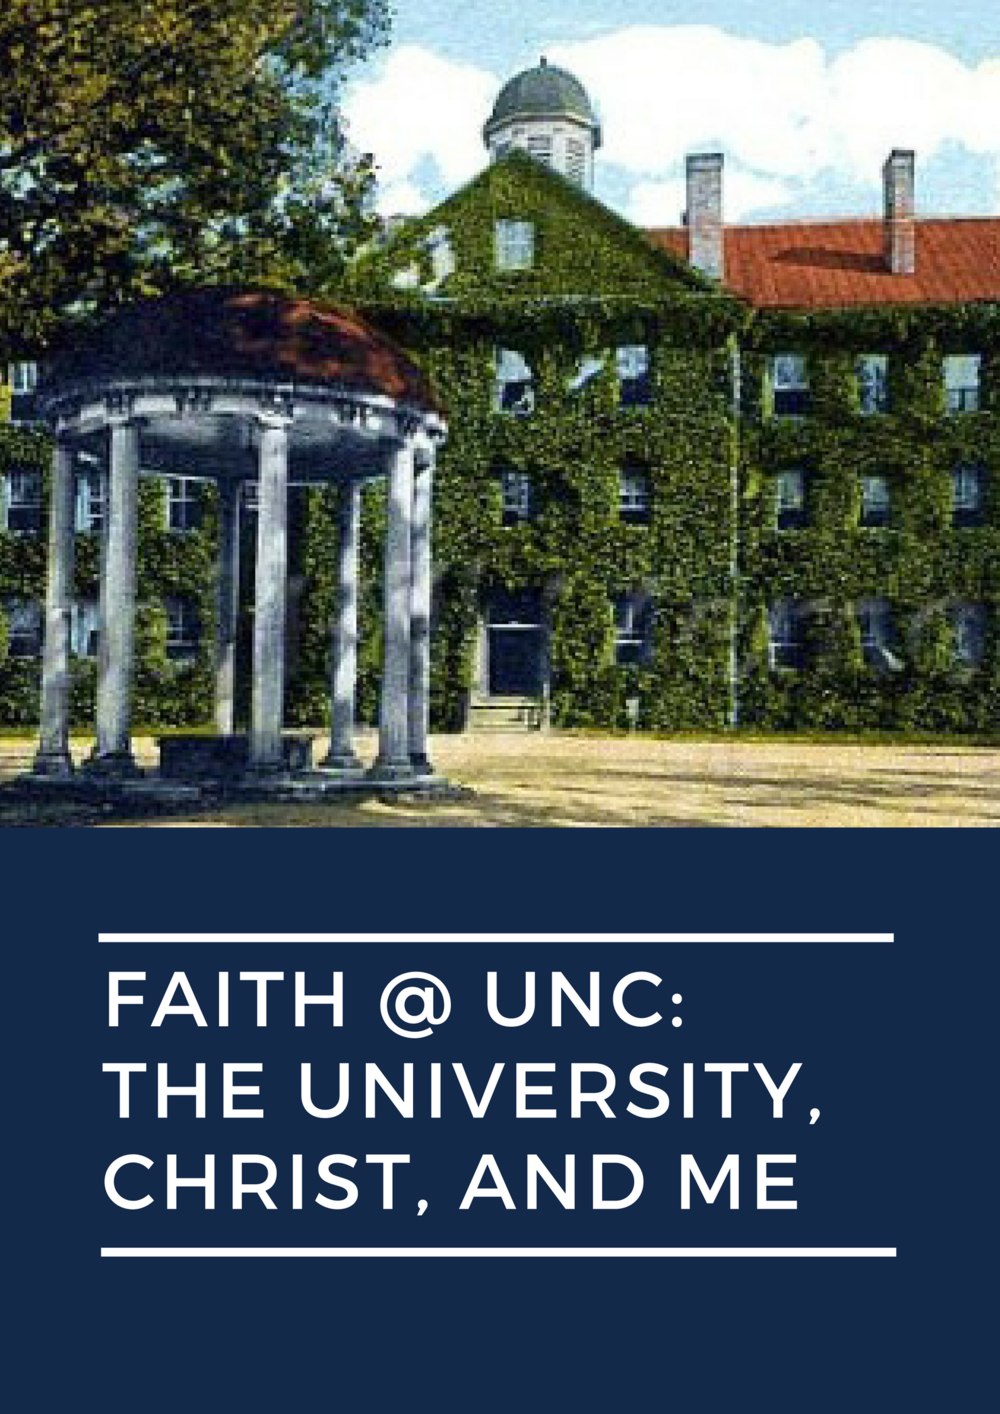 Faith @ UNC: The University, Christ, and Me